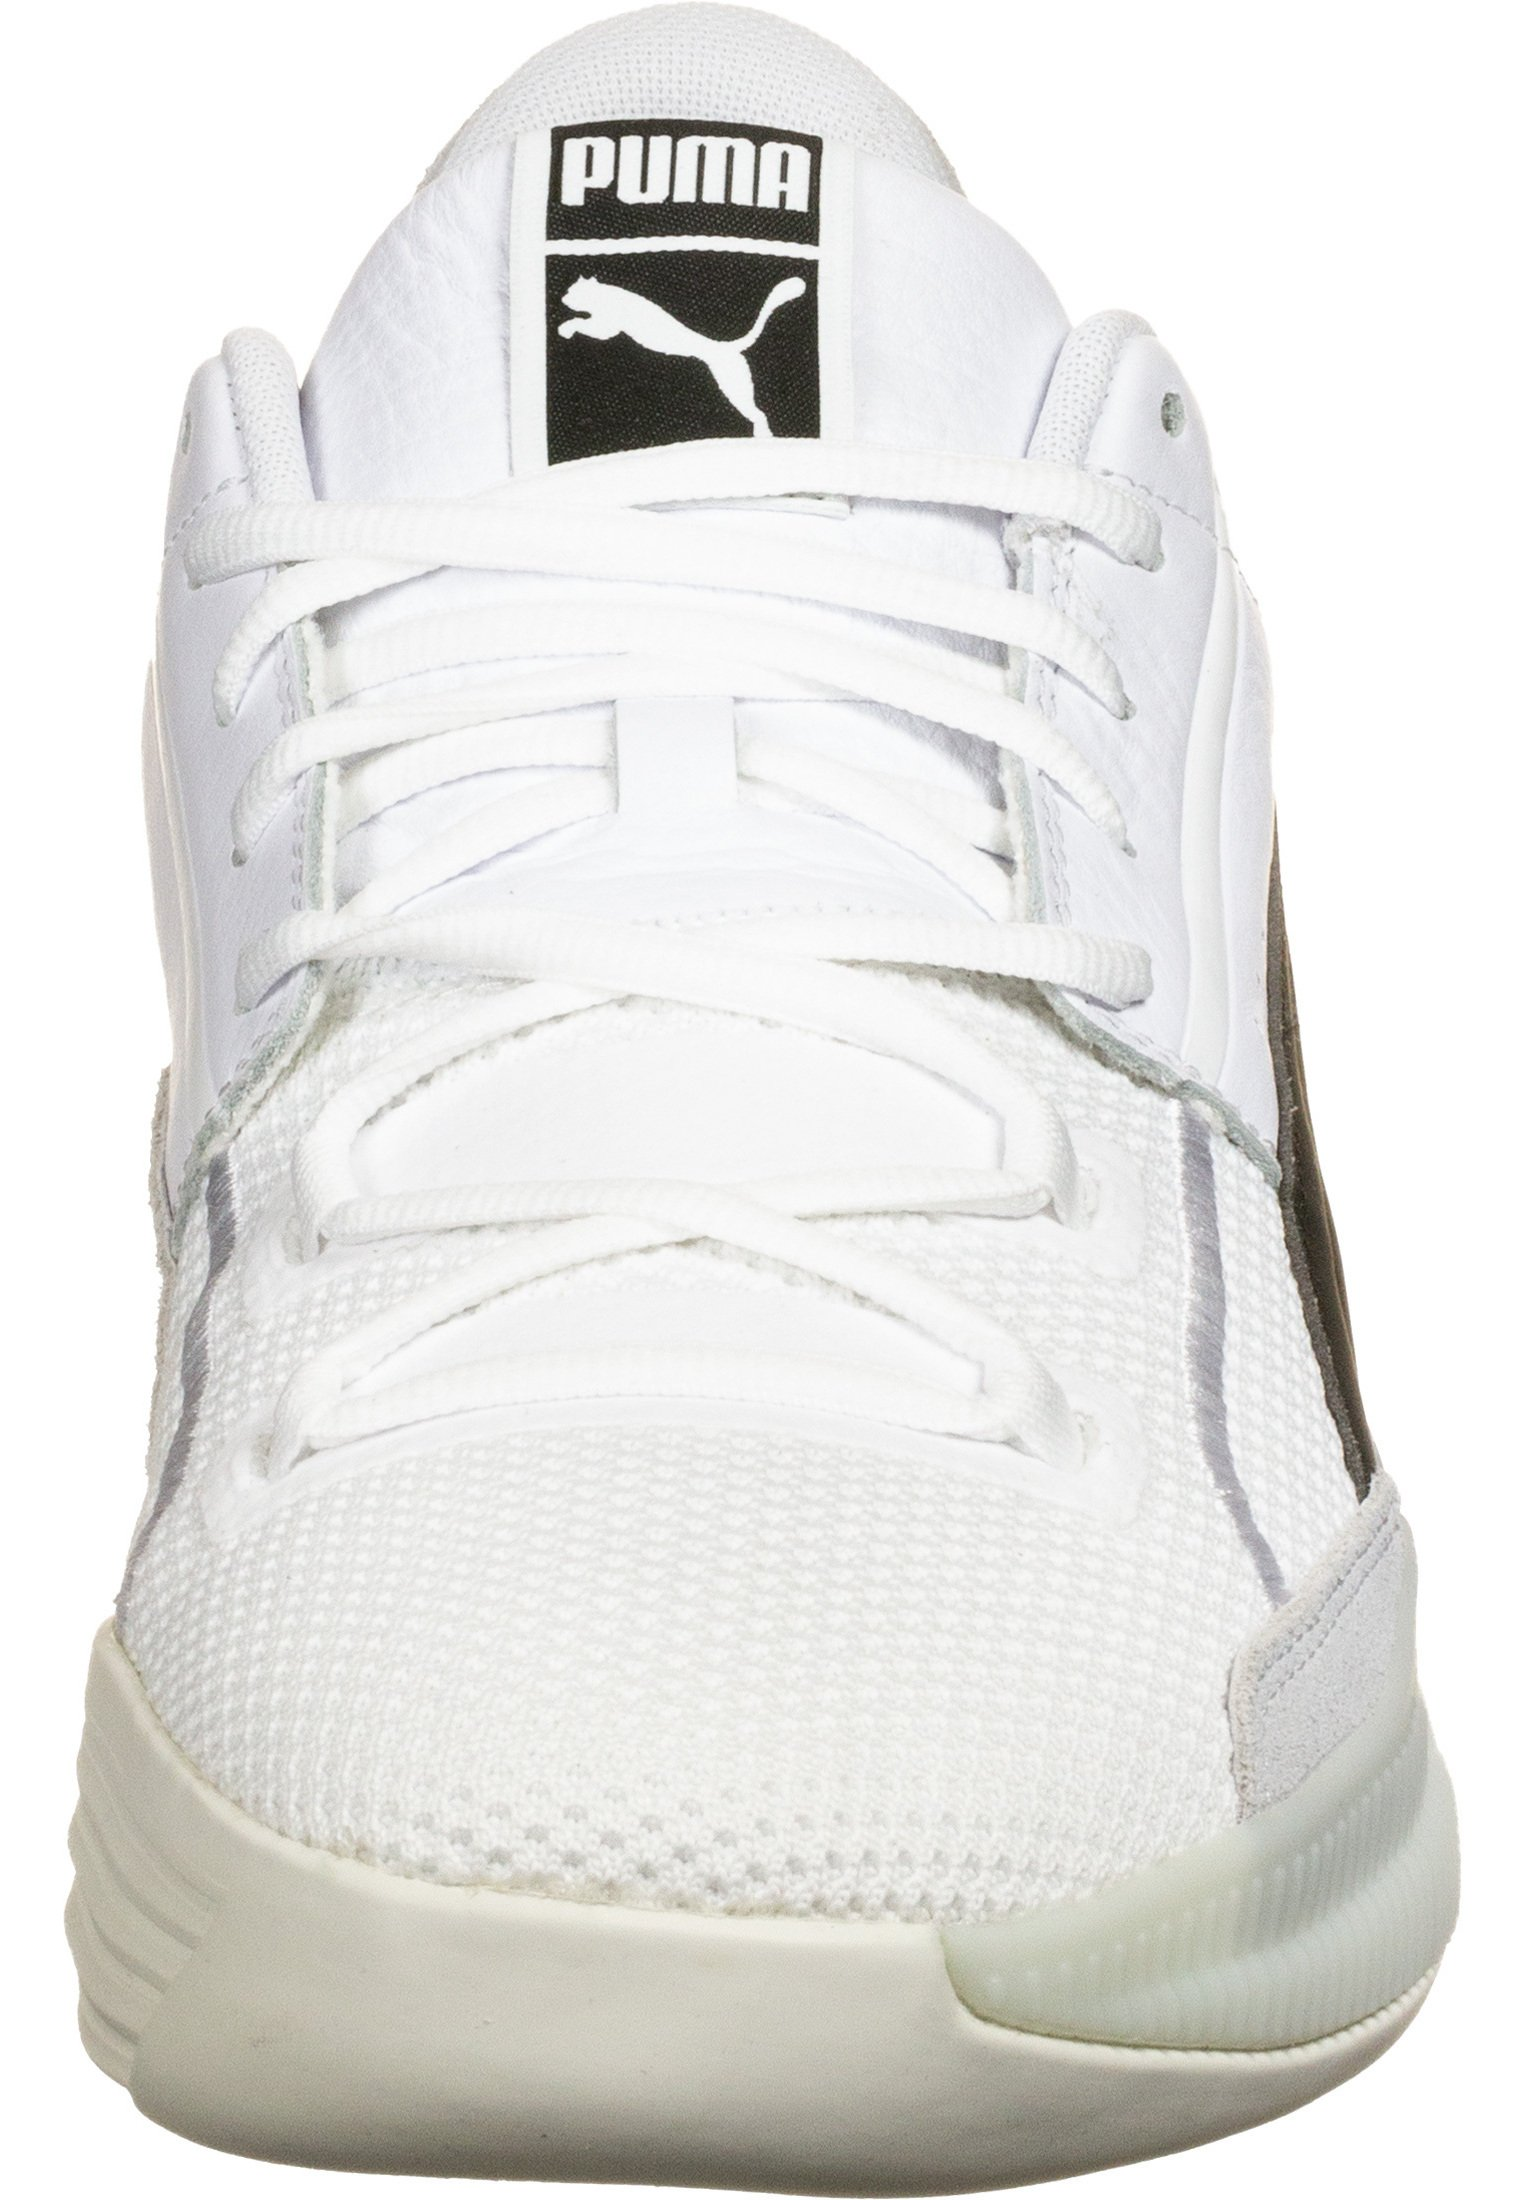 Puma SCHUHE CLYDE HARDWOOD - Baskets basses - white/black